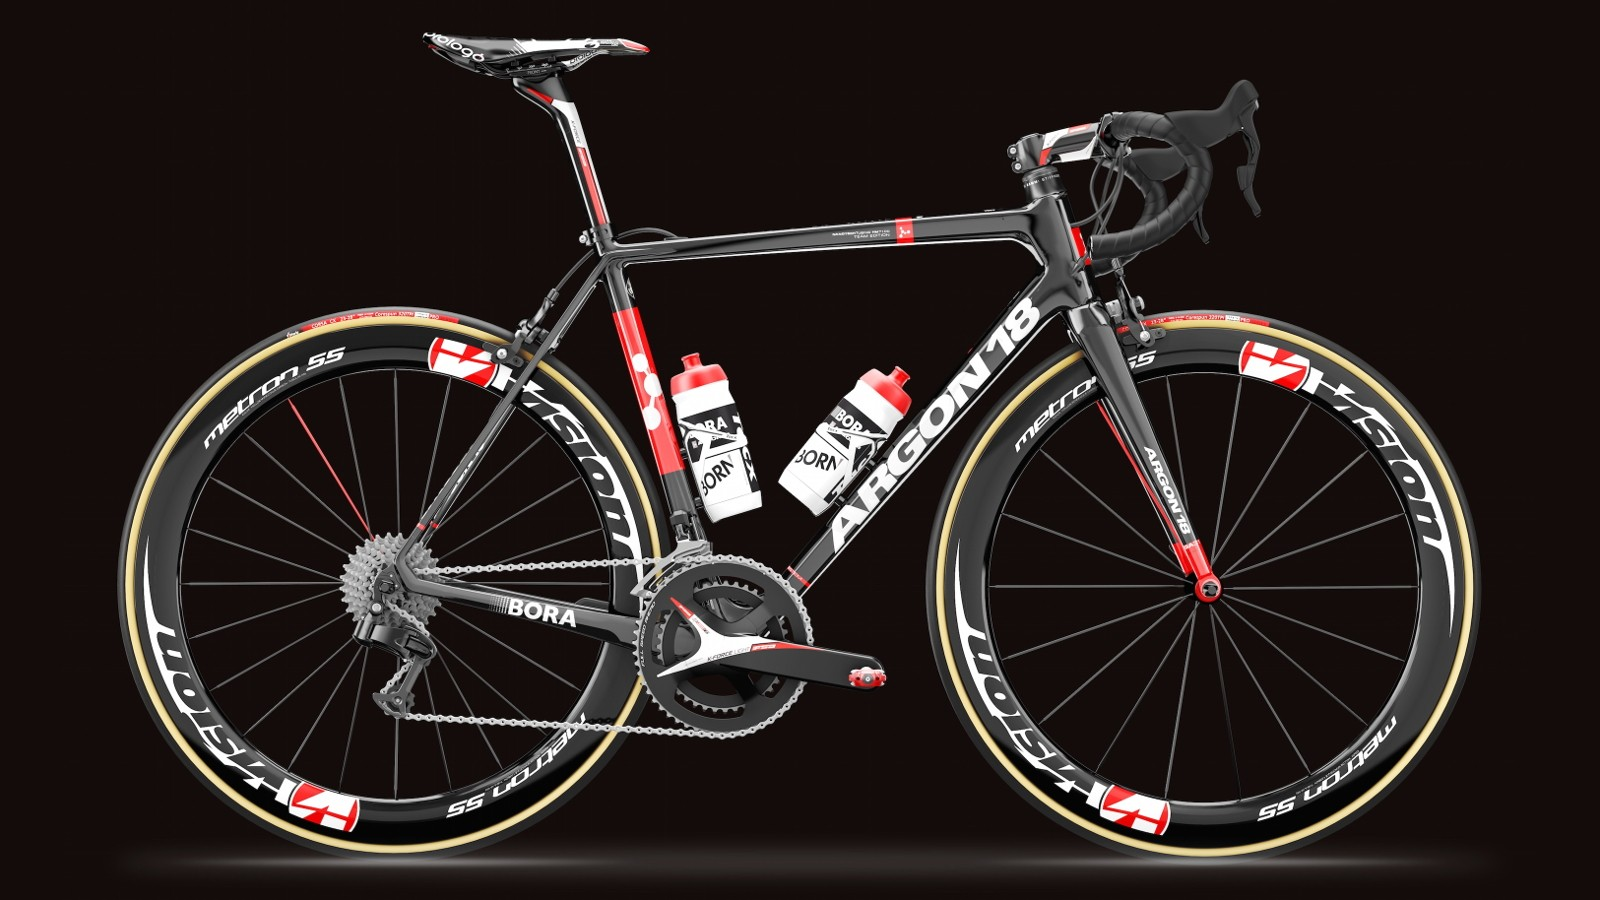 The Gallium Pro is extremely light, stiff, yet - says Argon 18 - compliant